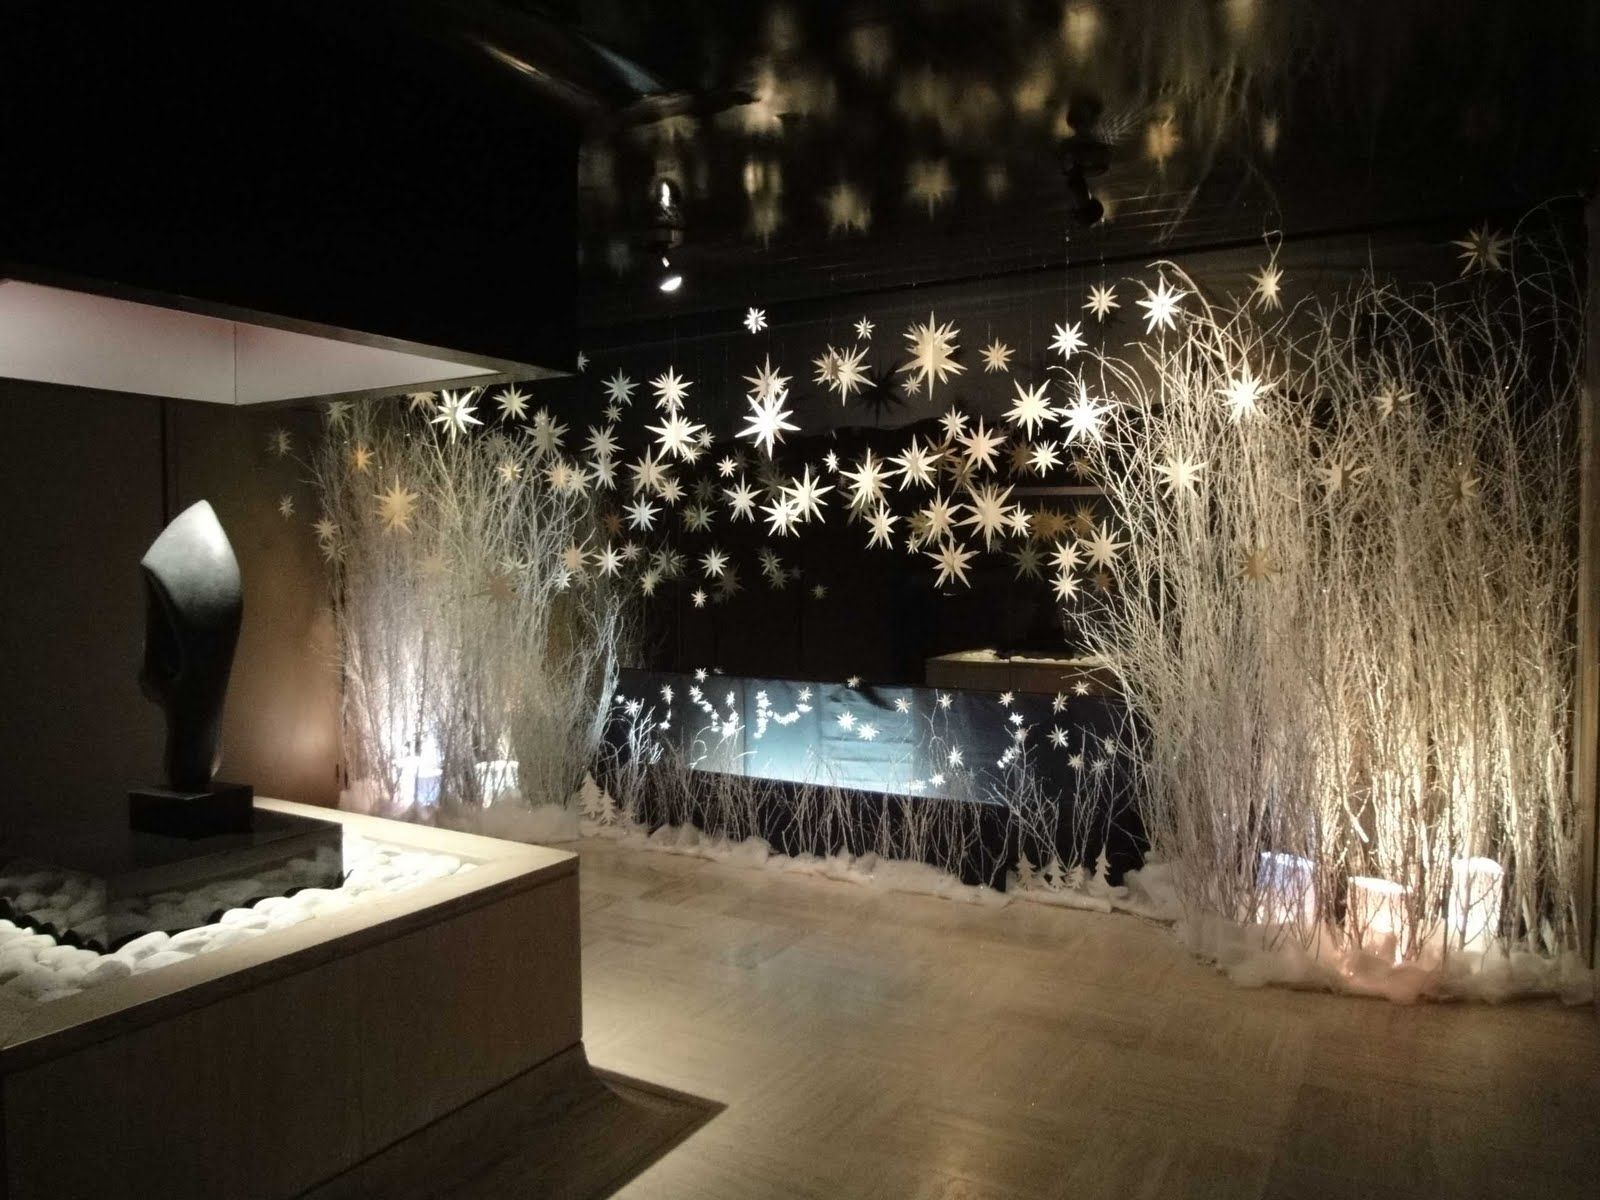 Office Christmas Party Ideas London Part - 16: Christmas Eve Decorations Ideas For A Corporate Christmas Party In London